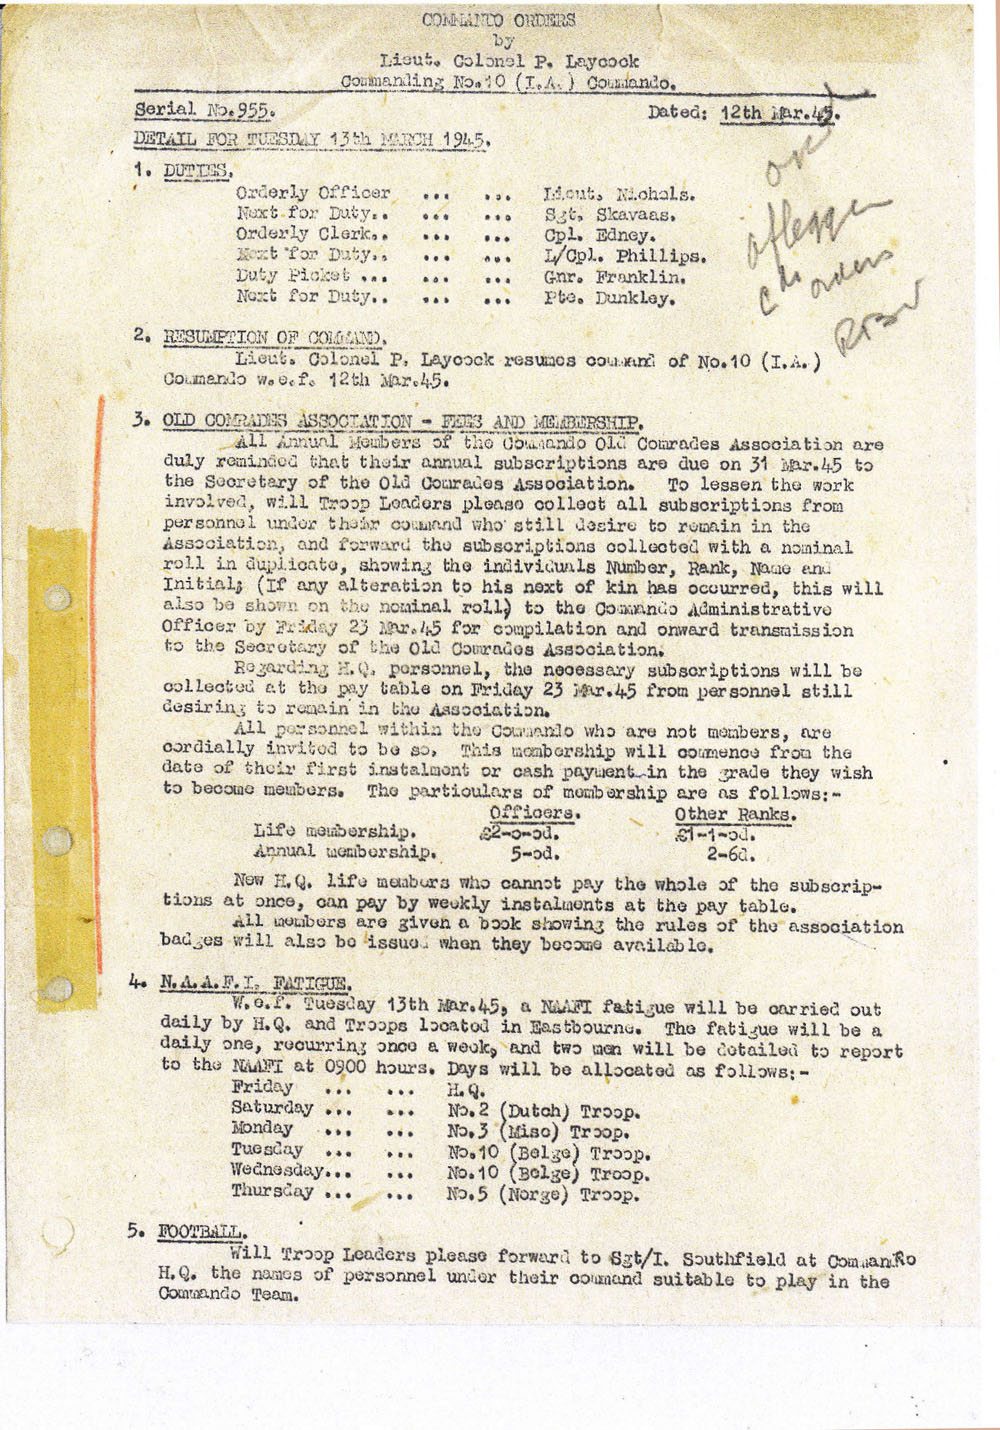 No.10IA Commando Orders by Lt. Col. Laycock - 12 March 1945